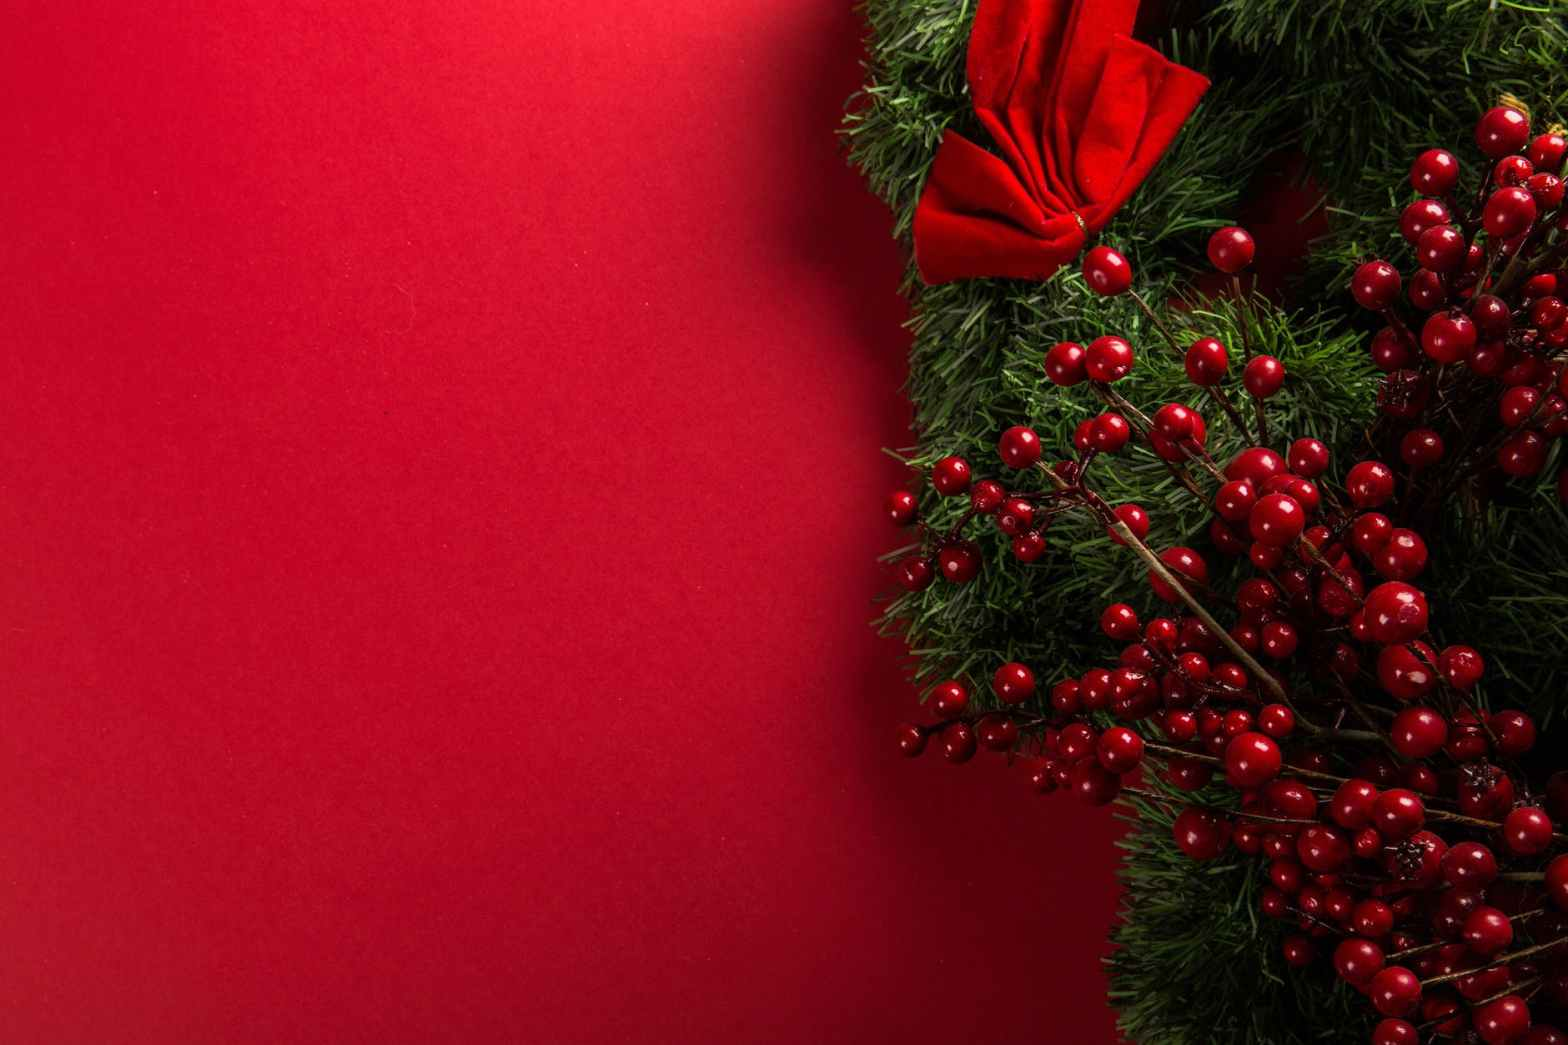 red and green mistletoe decoration